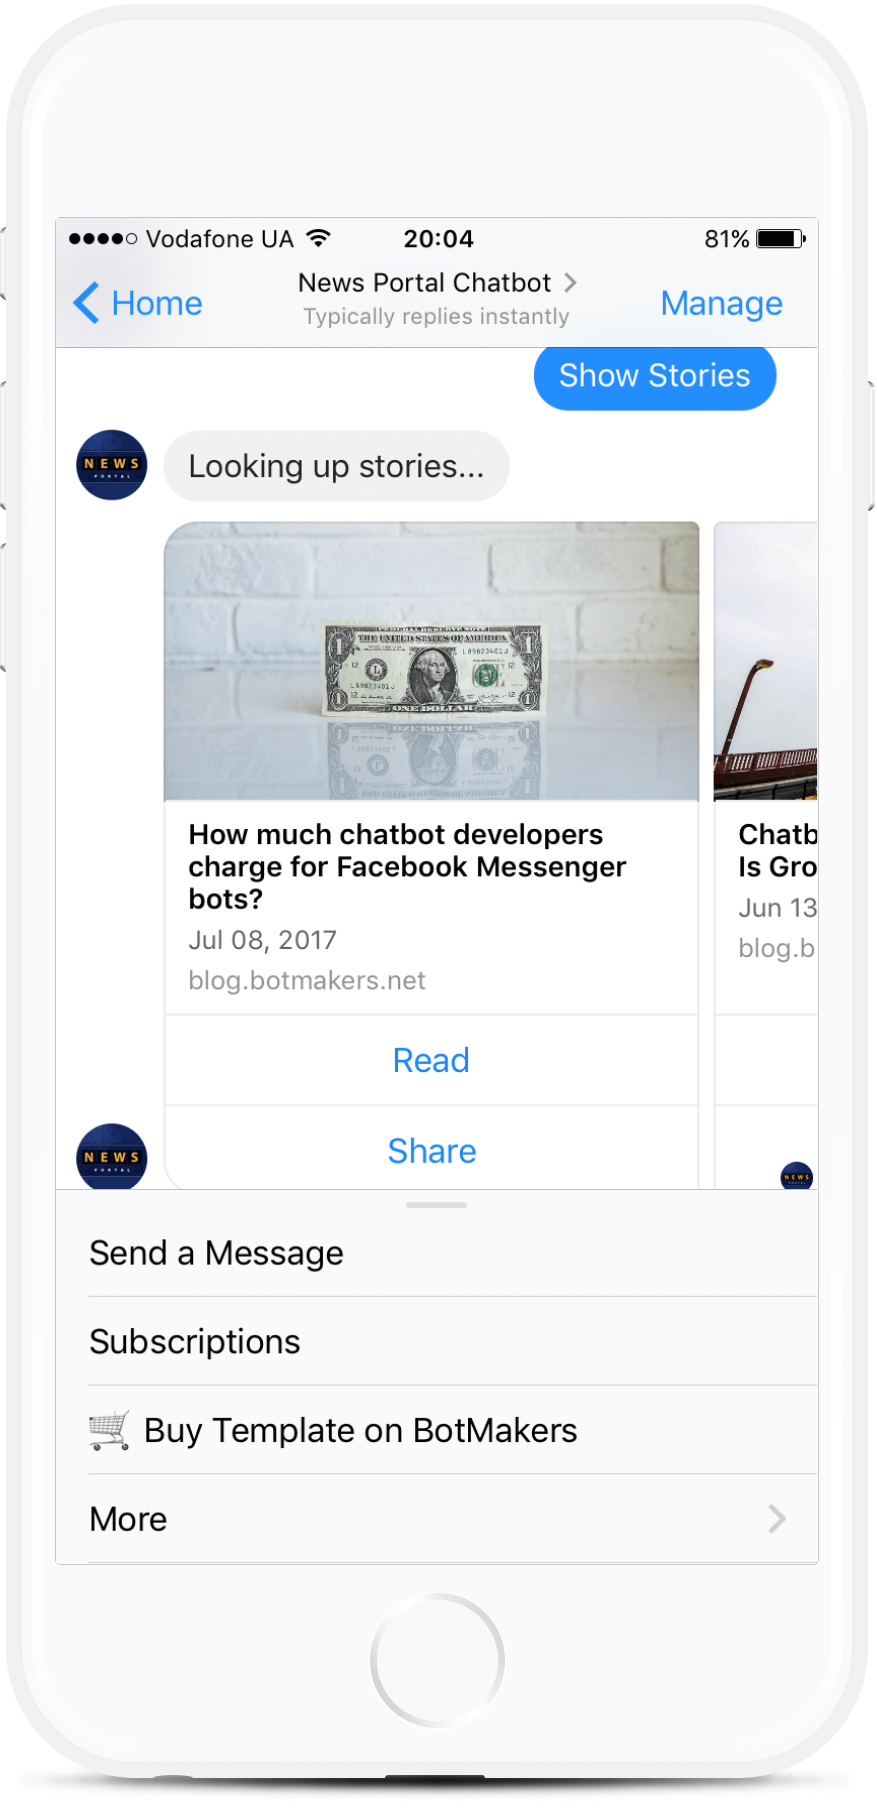 News and Publications Bot Template for Messenger for $69   #messenger #bottemplates #bots #chatbots #aibots #fbmessenger #botmakers